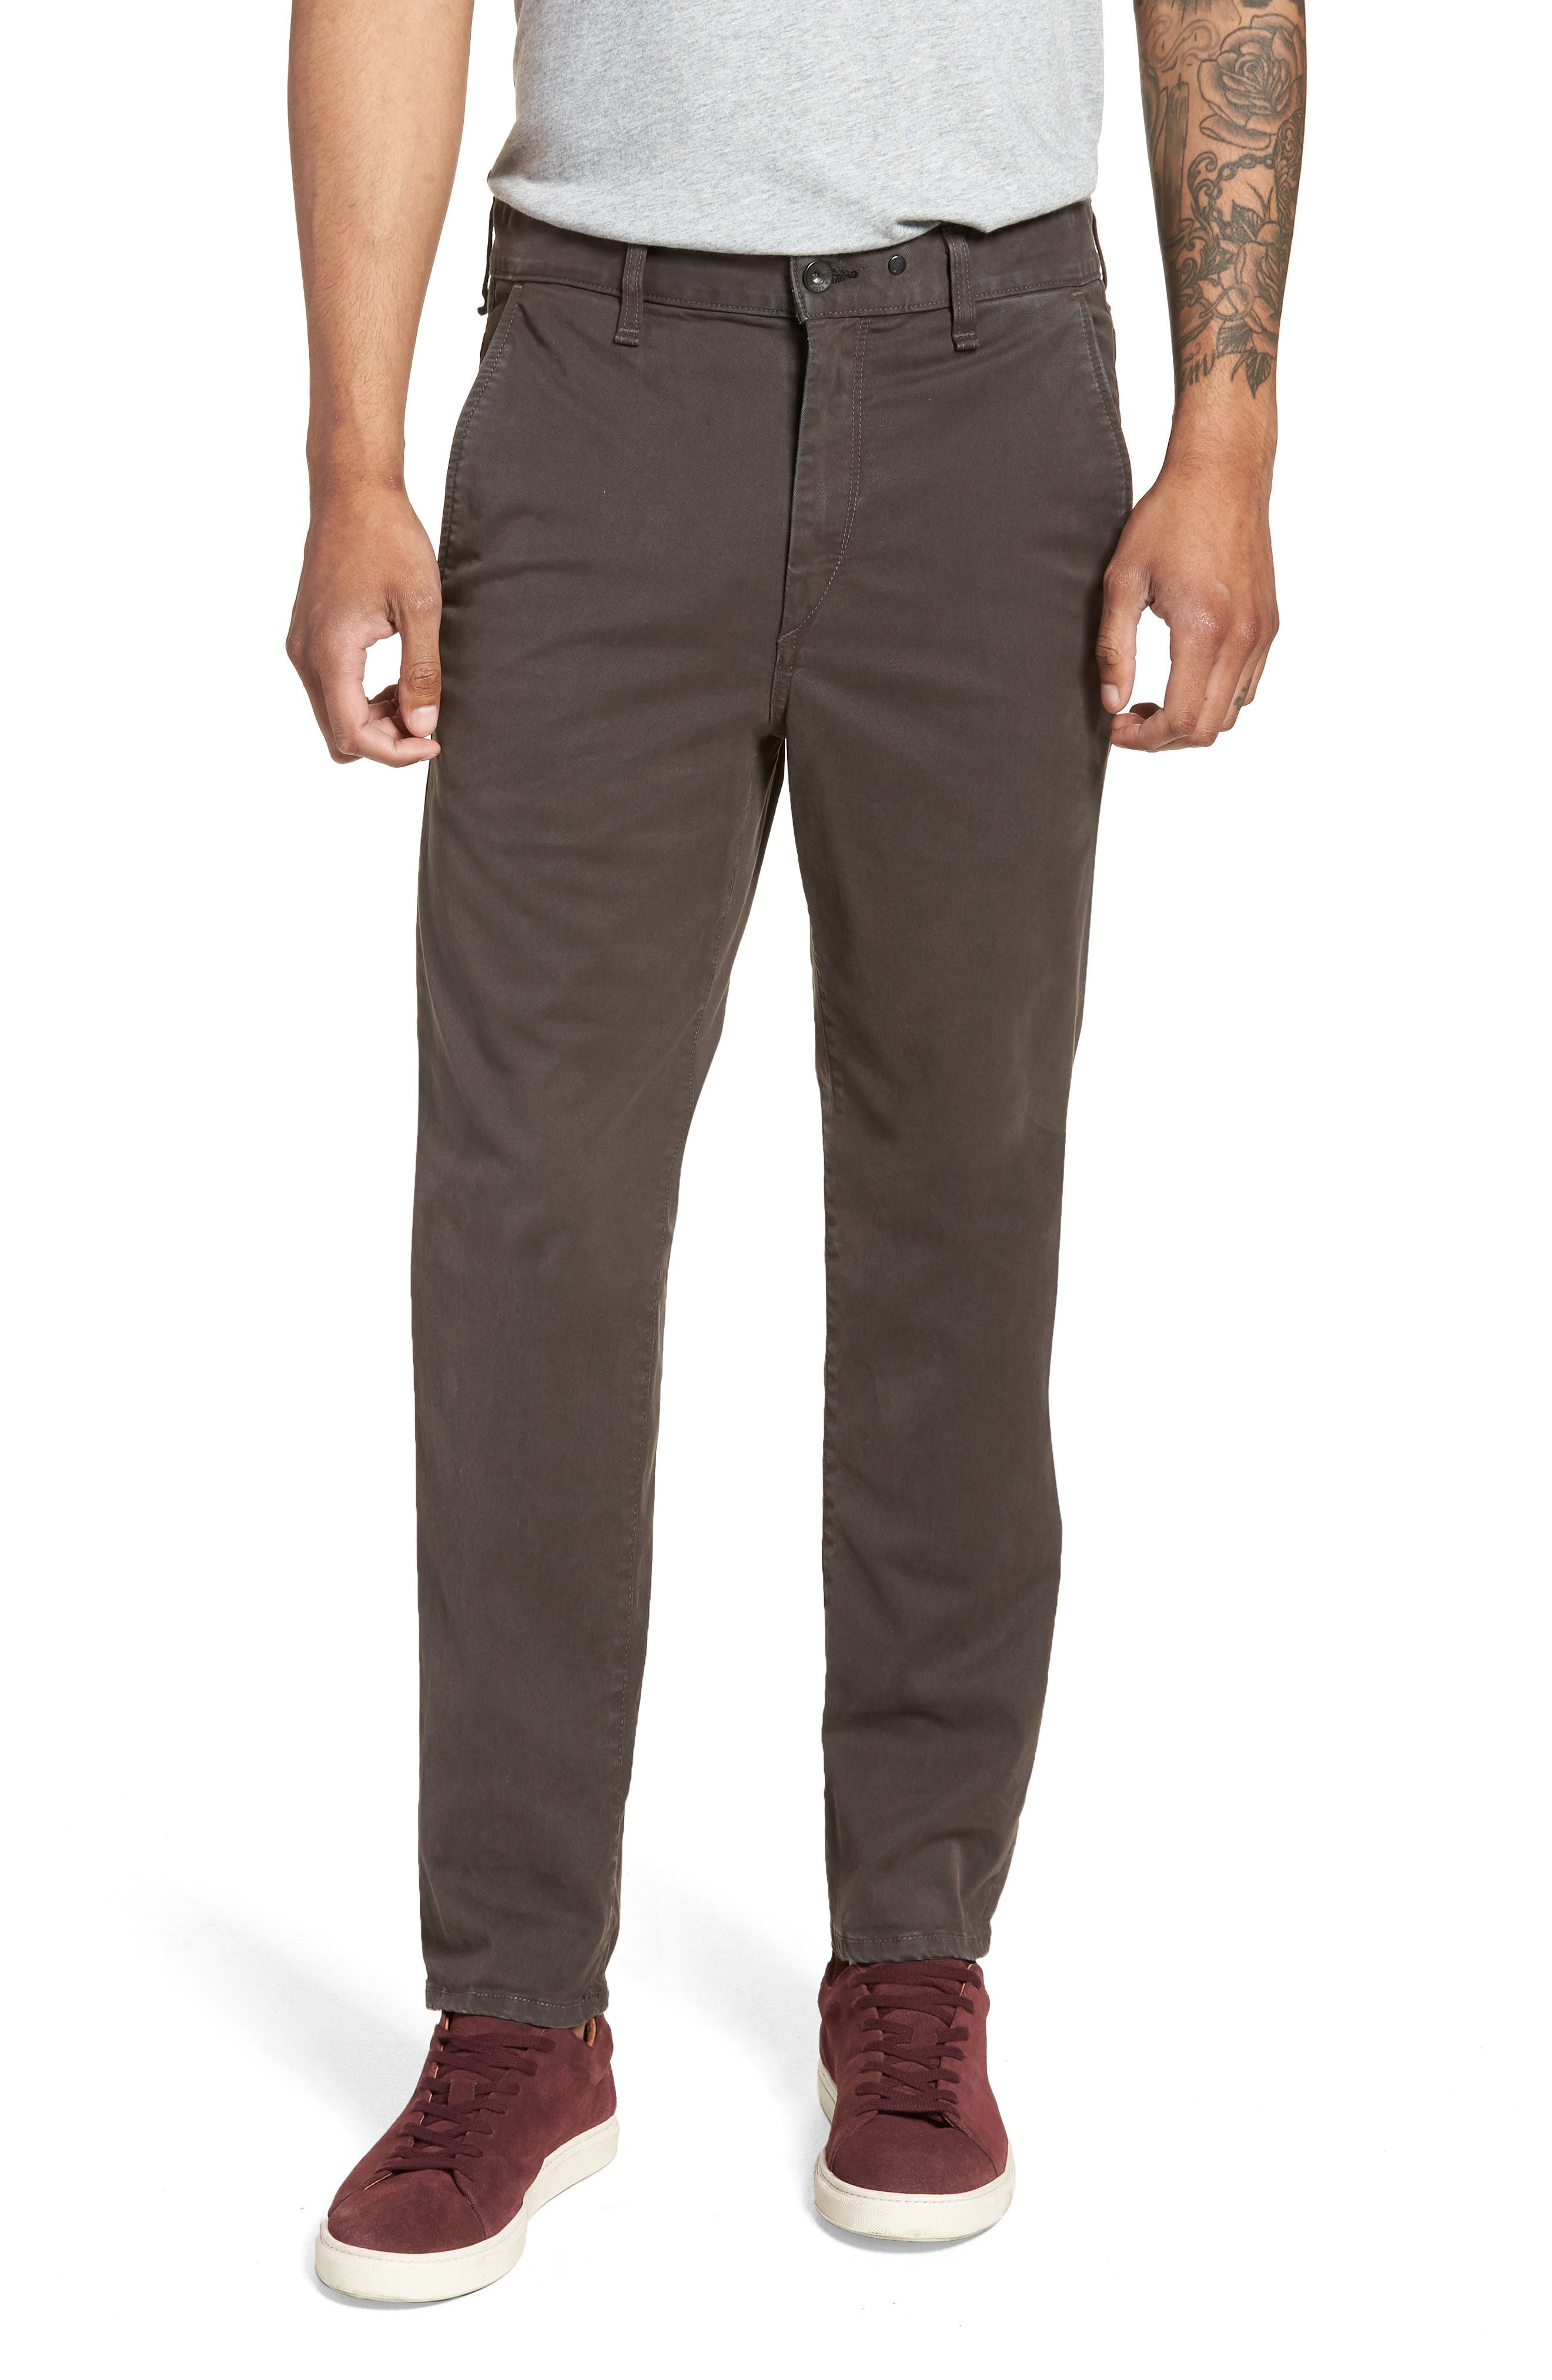 Fit 2 Chinos,                         Main,                         color, GREY